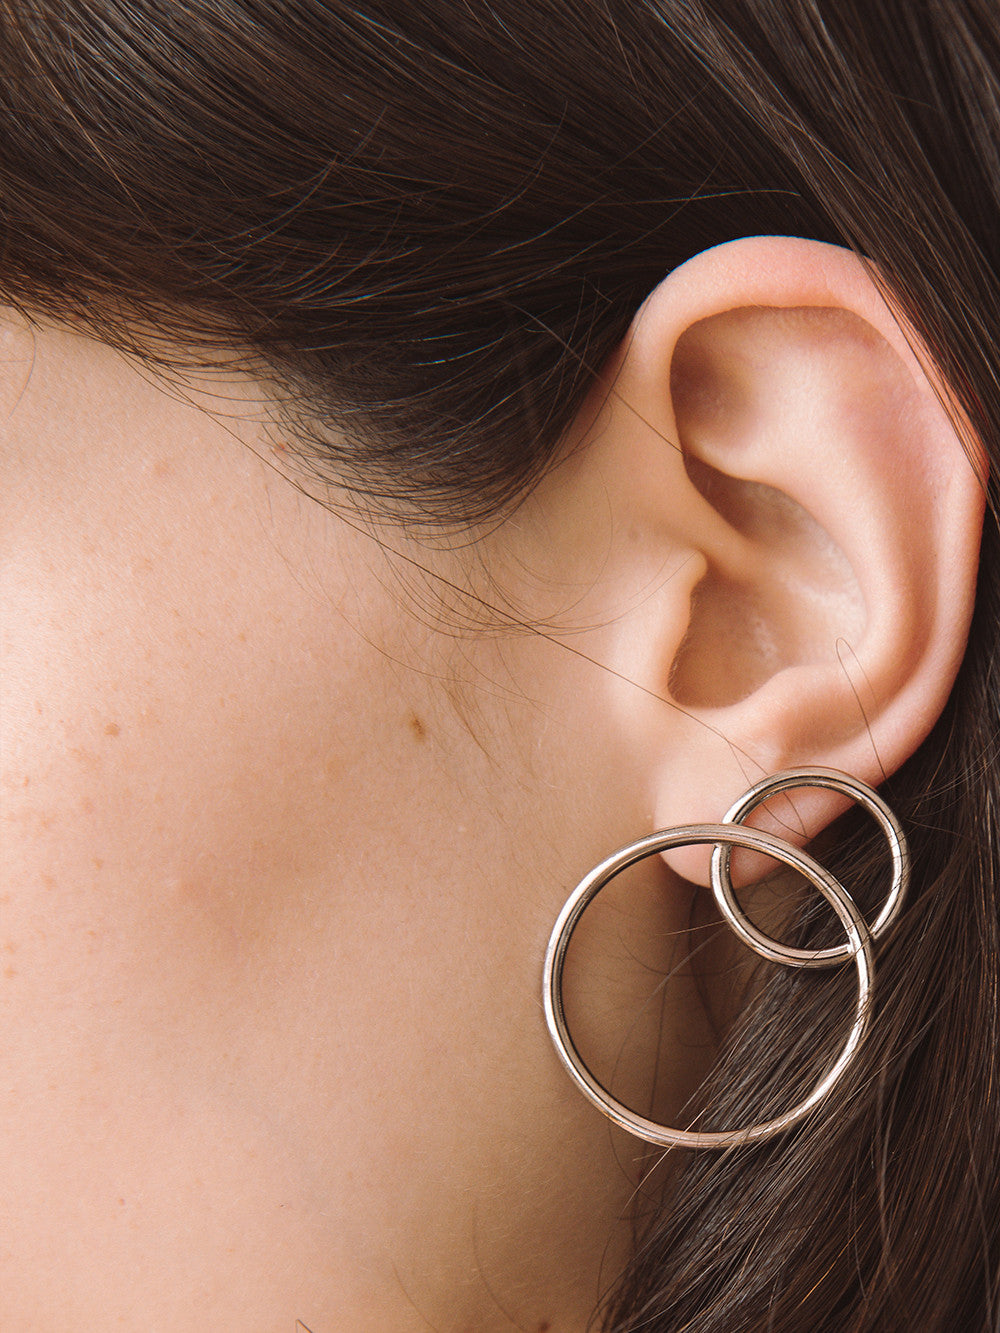 Justine-Clenquet-Lea-Earrings-Circles-Detail